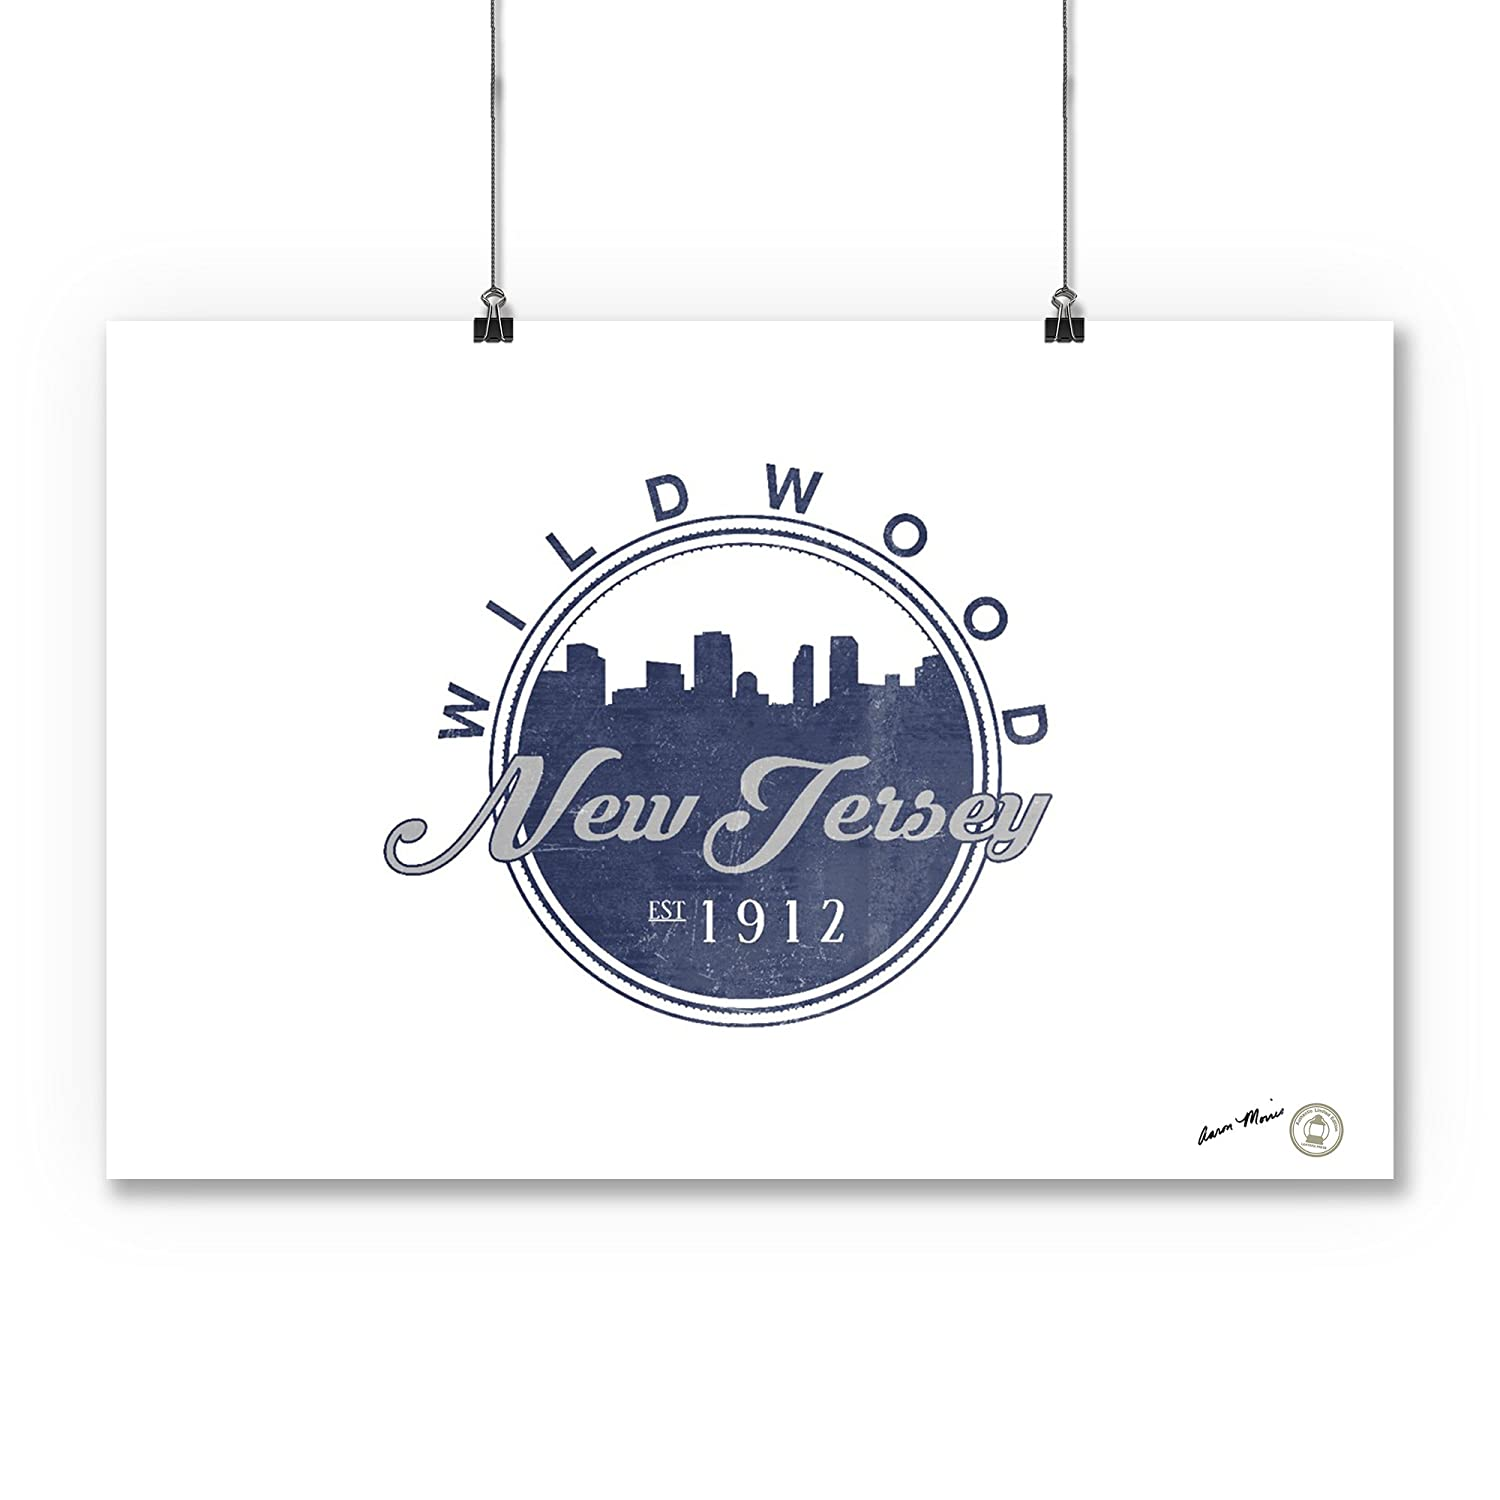 24x36 Giclee Gallery Print, Wall Decor Travel Poster Blue Wildwood Skyline Seal New Jersey